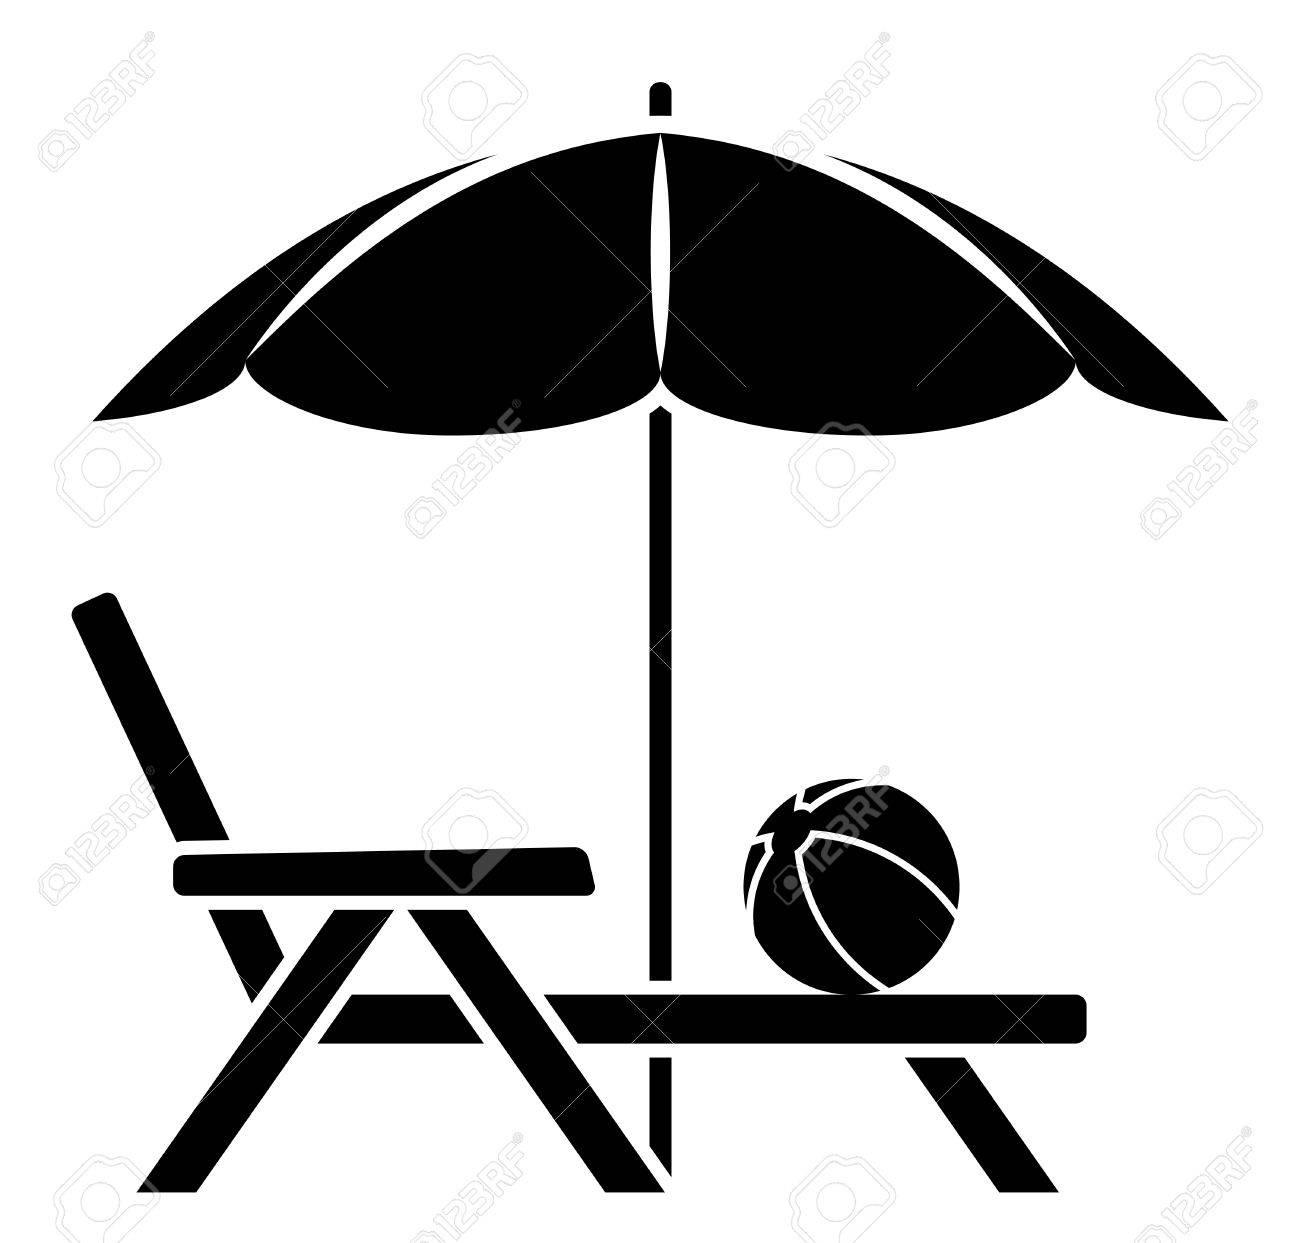 Chair beach umbrella and chair black and white - Vector Deck Chair Under Beach Umbrella Isolated On White Background Stock Vector 52191995